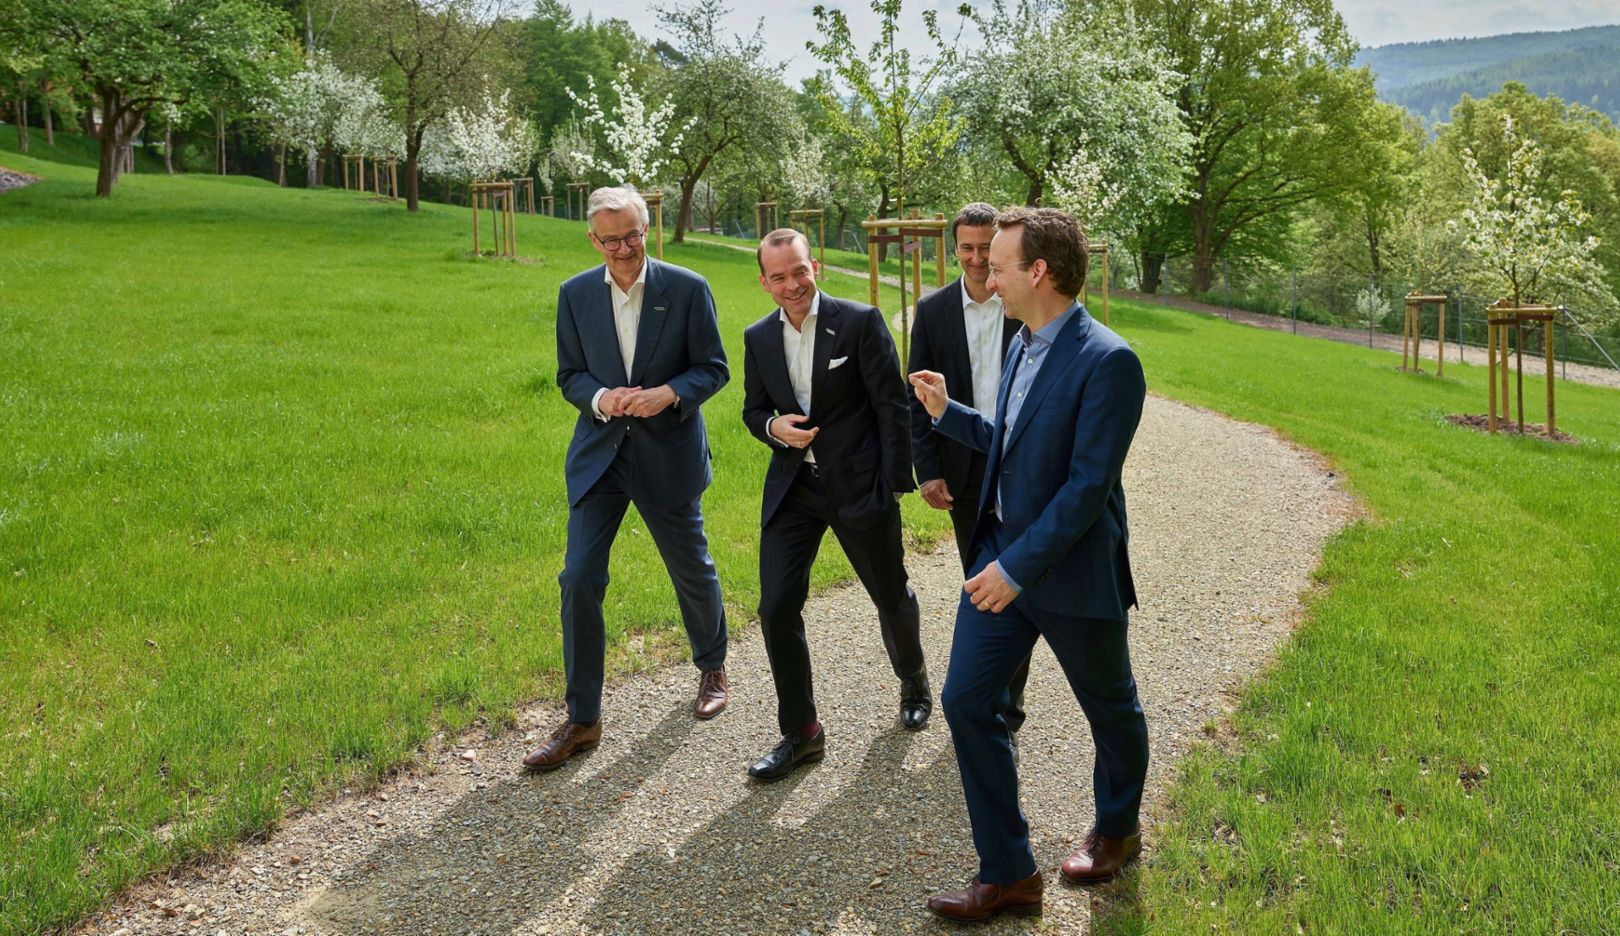 """Walking meetings are on the agenda at B. Braun Melsungen AG, a leading medical technology company. Dr. Wolfgang Freibichler (Porsche Consulting, right) focuses on """"nudges"""" that promote the creativity and health of employees. Photo: Porsche Consulting"""